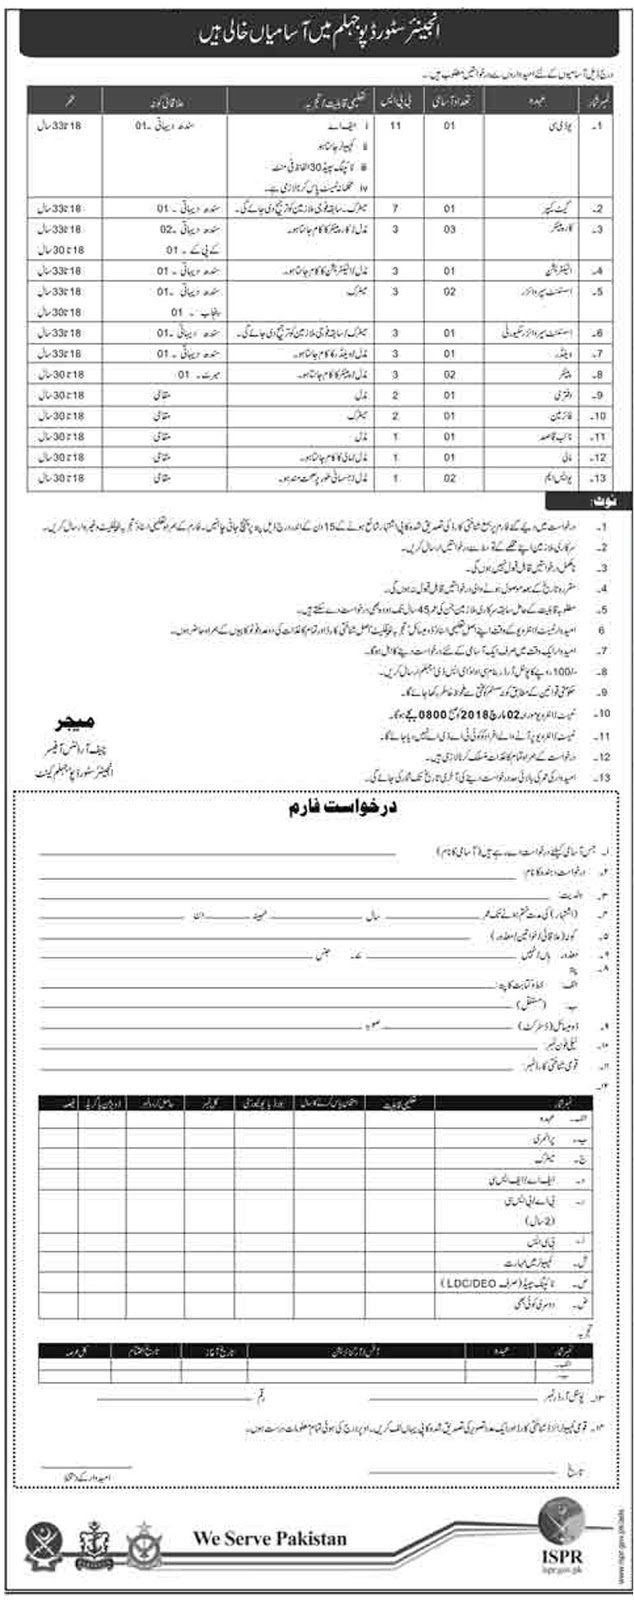 Jobs in stan Army 2018 for UDC and Others | Application Form ... Application Form Army on army sworn statement example, sales tax exemption form, army dental corps, direct deposit sign-up form, army military records search, army trips form.pdf, employee action form, army counseling examples, army letter of acceptance, army home, army code of conduct, blank employee incident report form, army sop examples, army medical corps, army letter of application, army privacy act statement, sample direct deposit form, army women's basketball, army recruiting application, army personal data sheet,